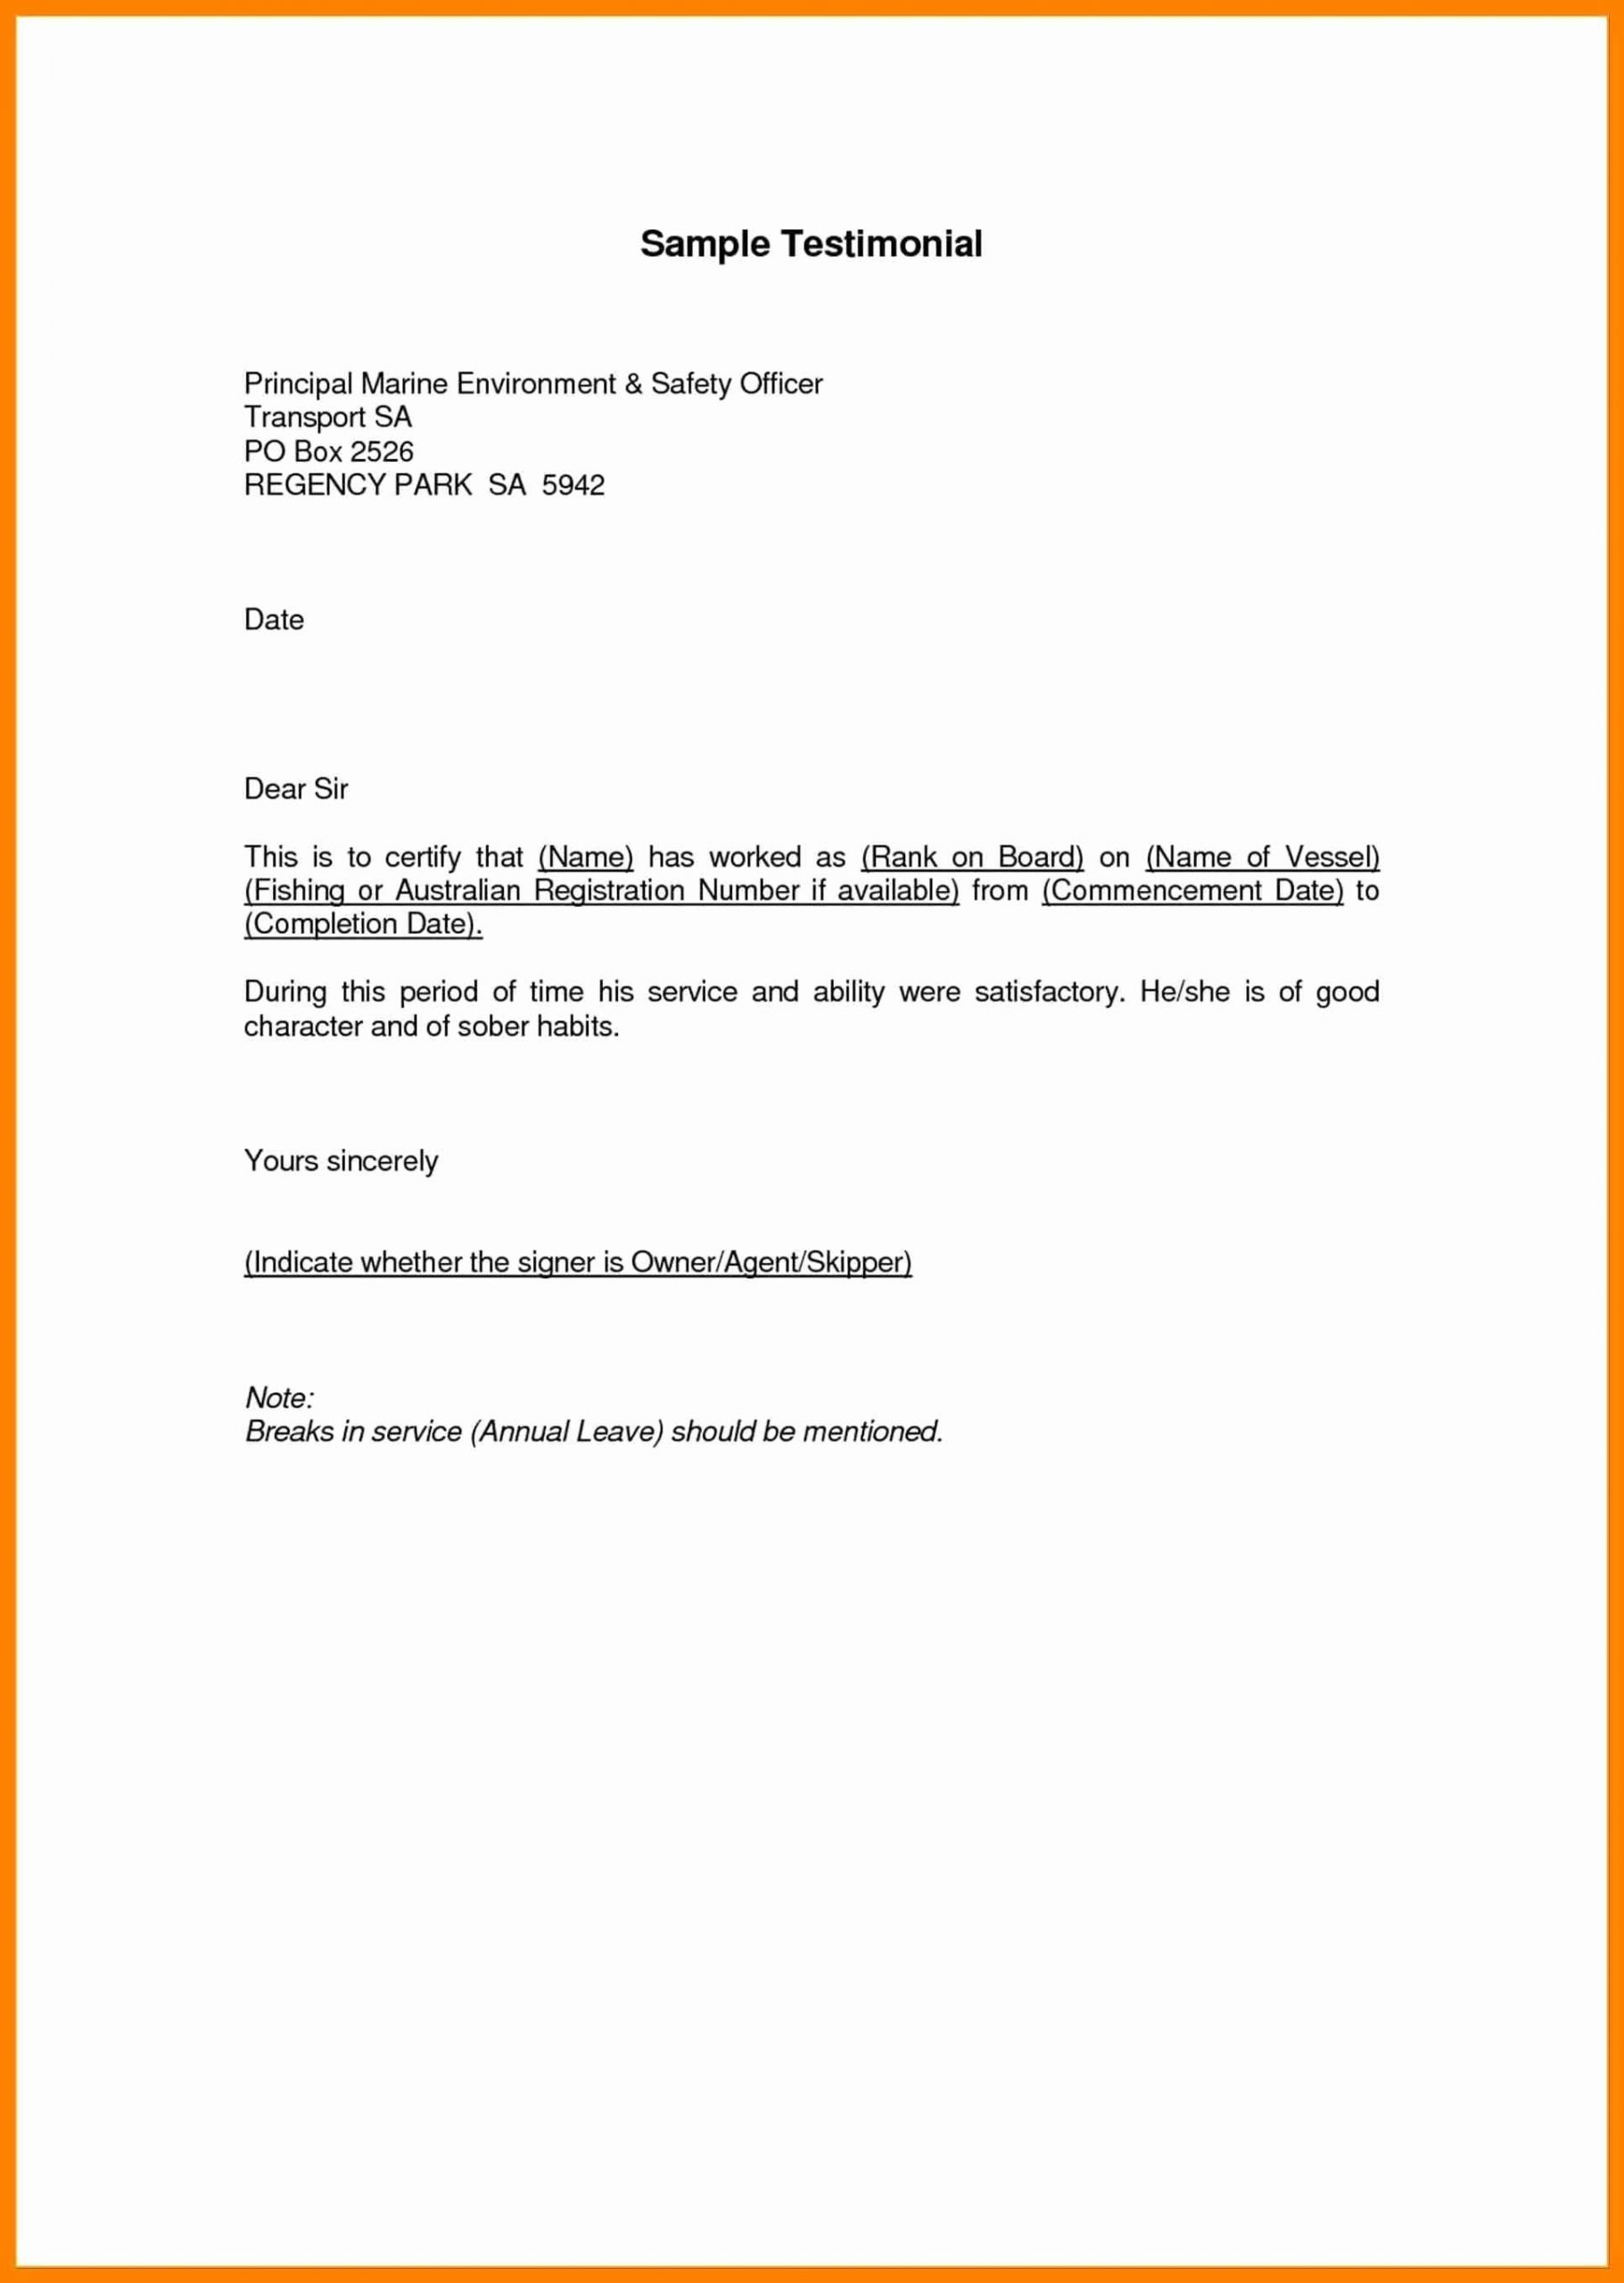 Letter Of Testimony Example Best Of How to Write A Personal Testimonial About Yourself with